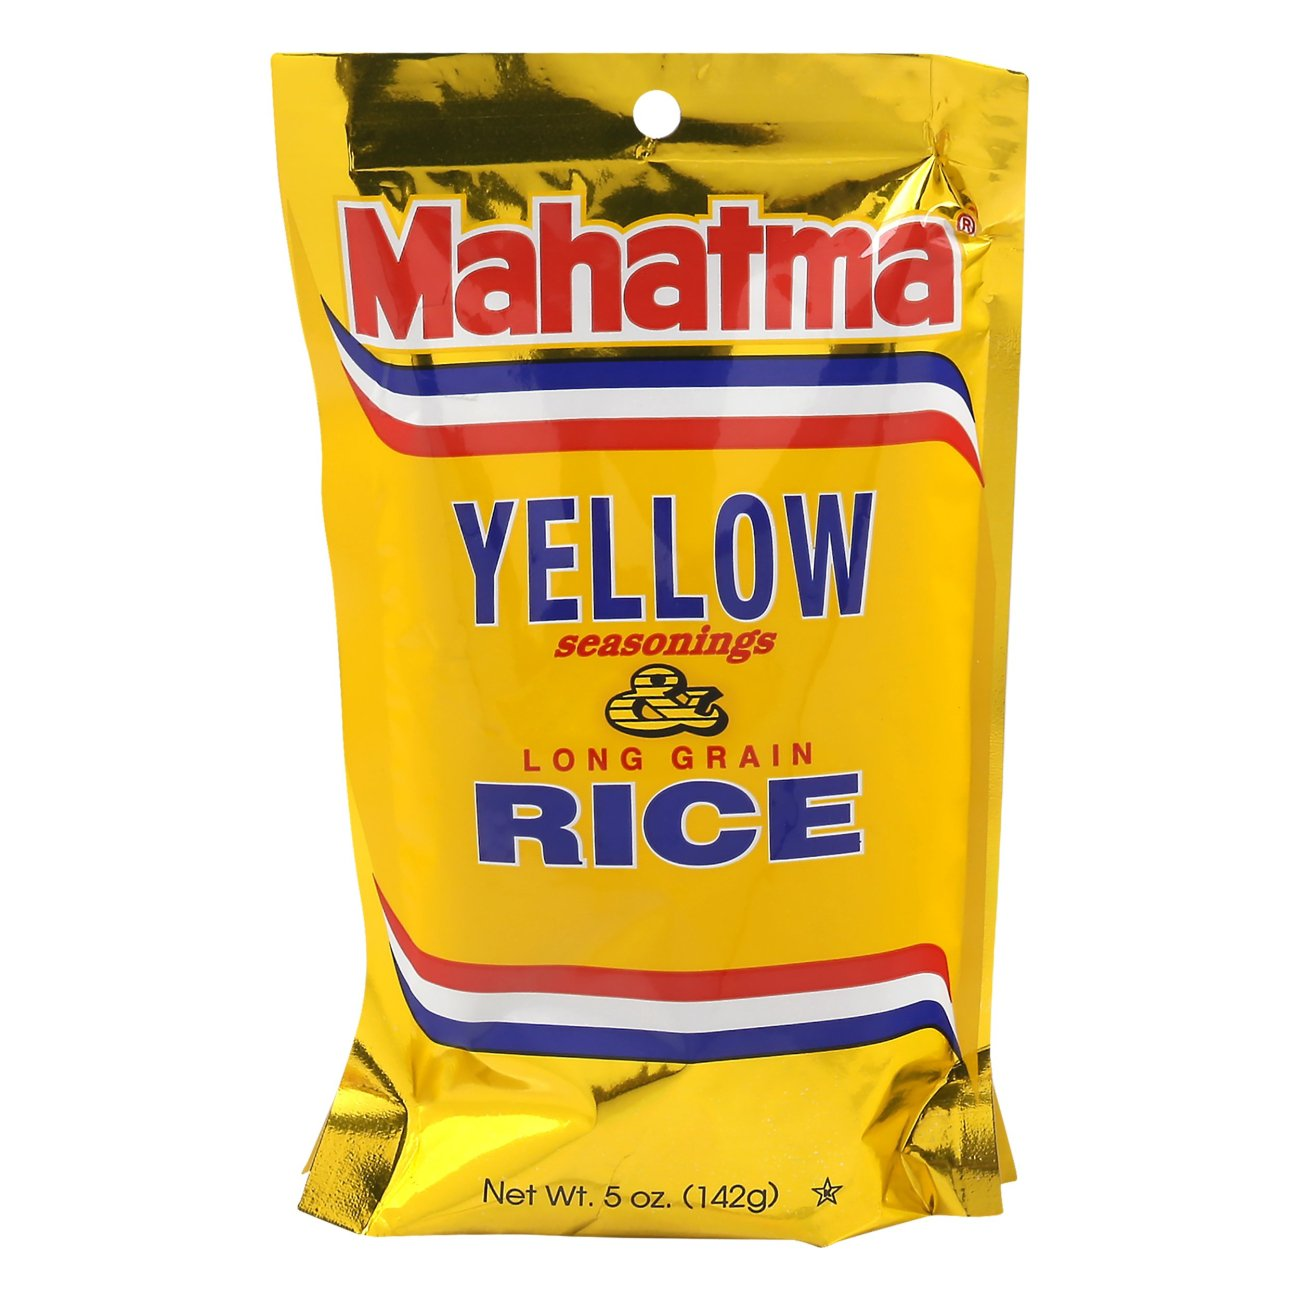 Mahatma Saffron Yellow Rice Shop Rice Grains At H E B